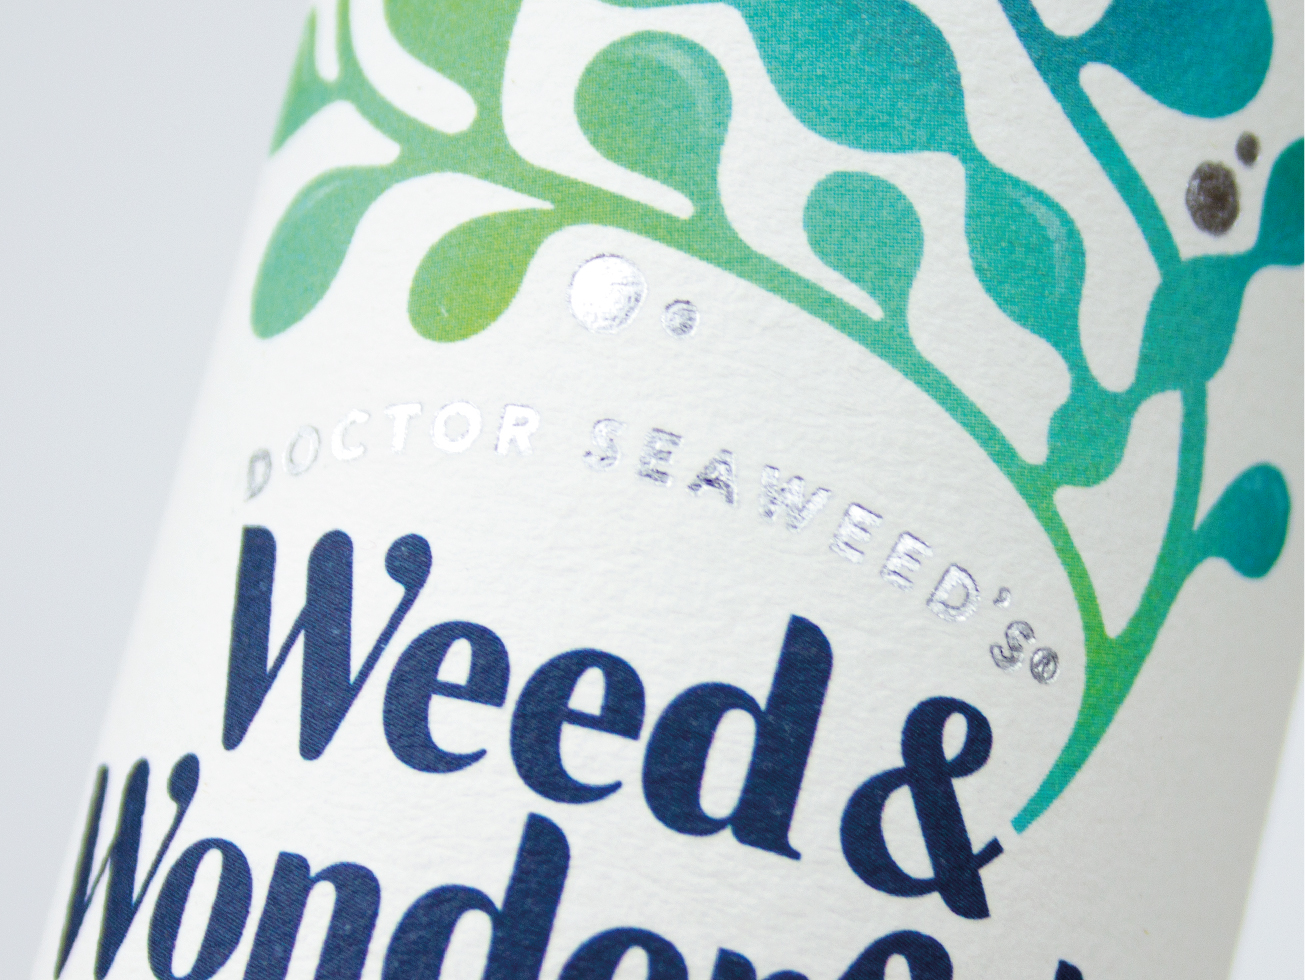 Weed_and_Wonderful_Website_jpegs_with_photos_CS5_jpegs_for_website2-03.jpg